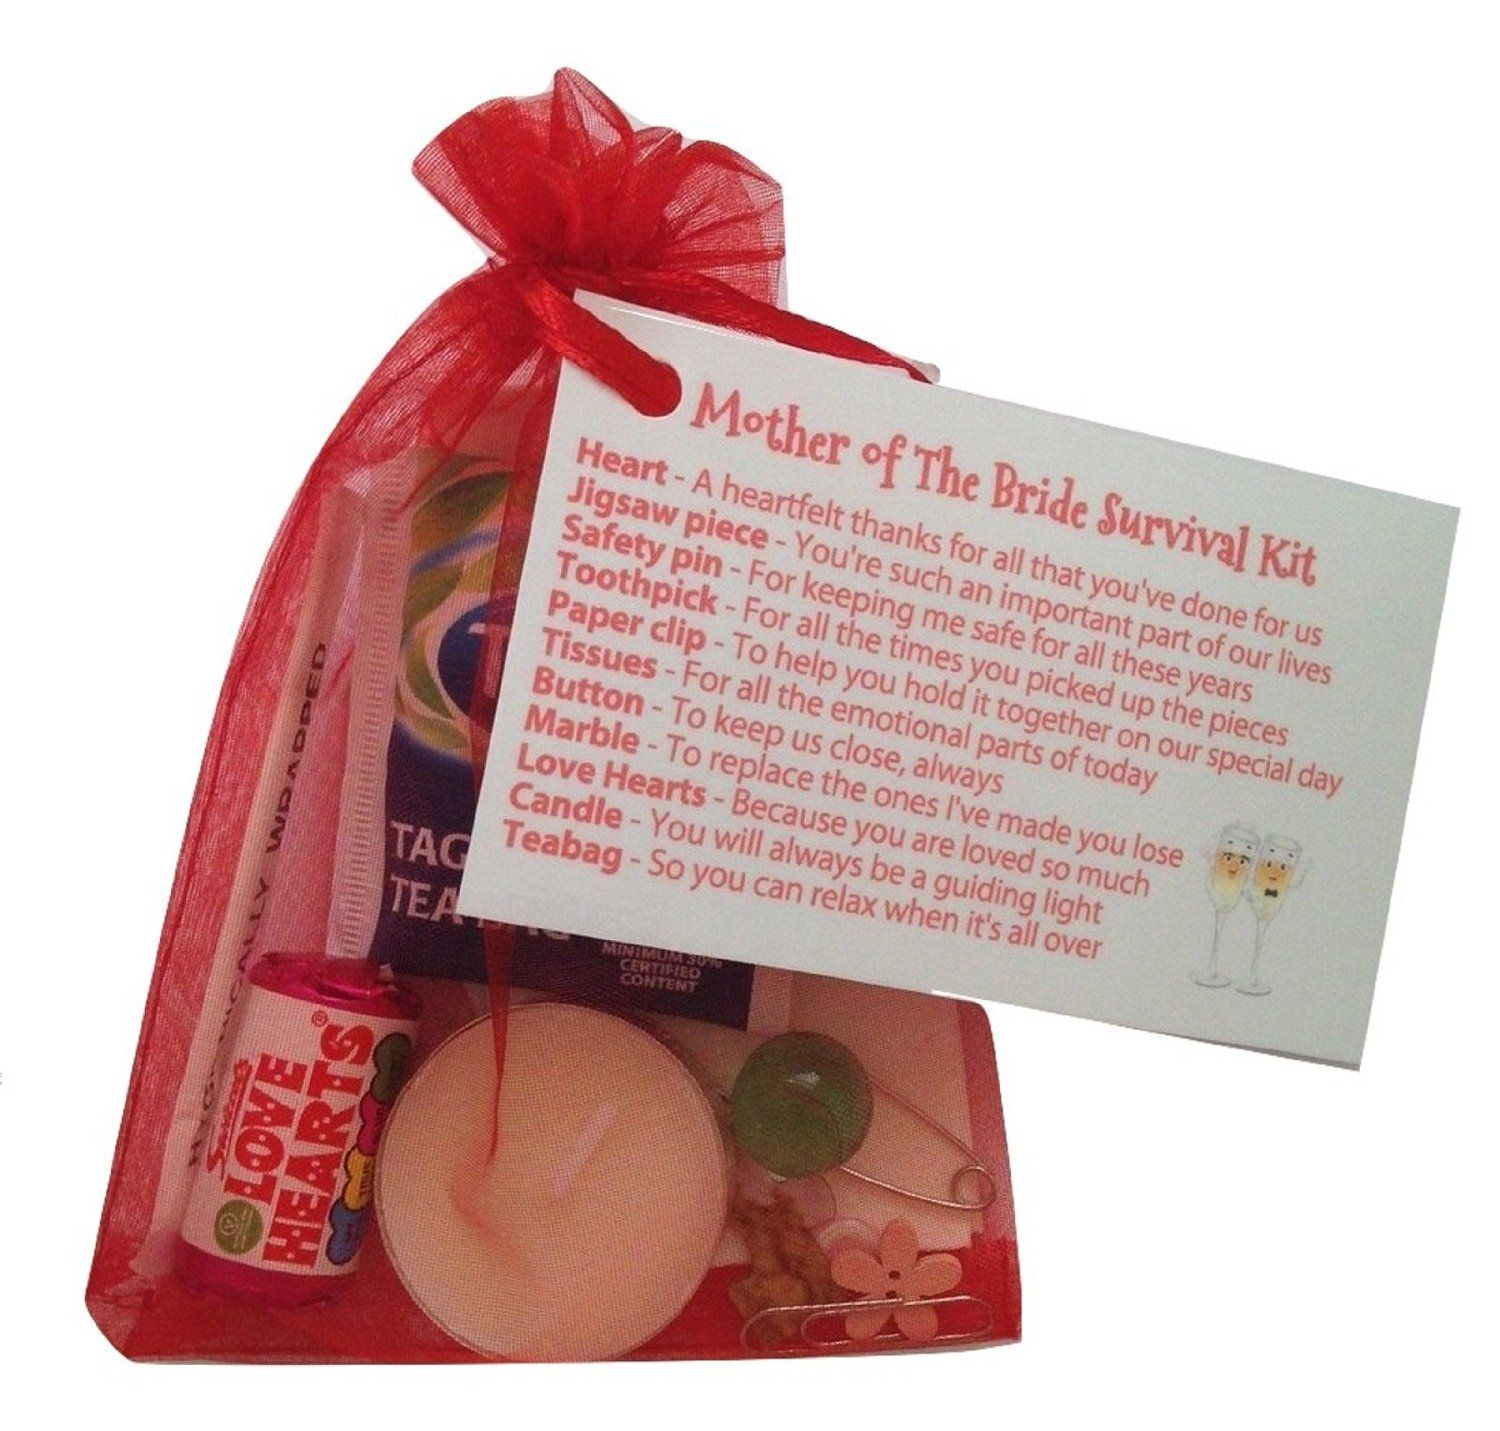 Mother of the Bride Survival Kit in Red. Thank you gift & card ...